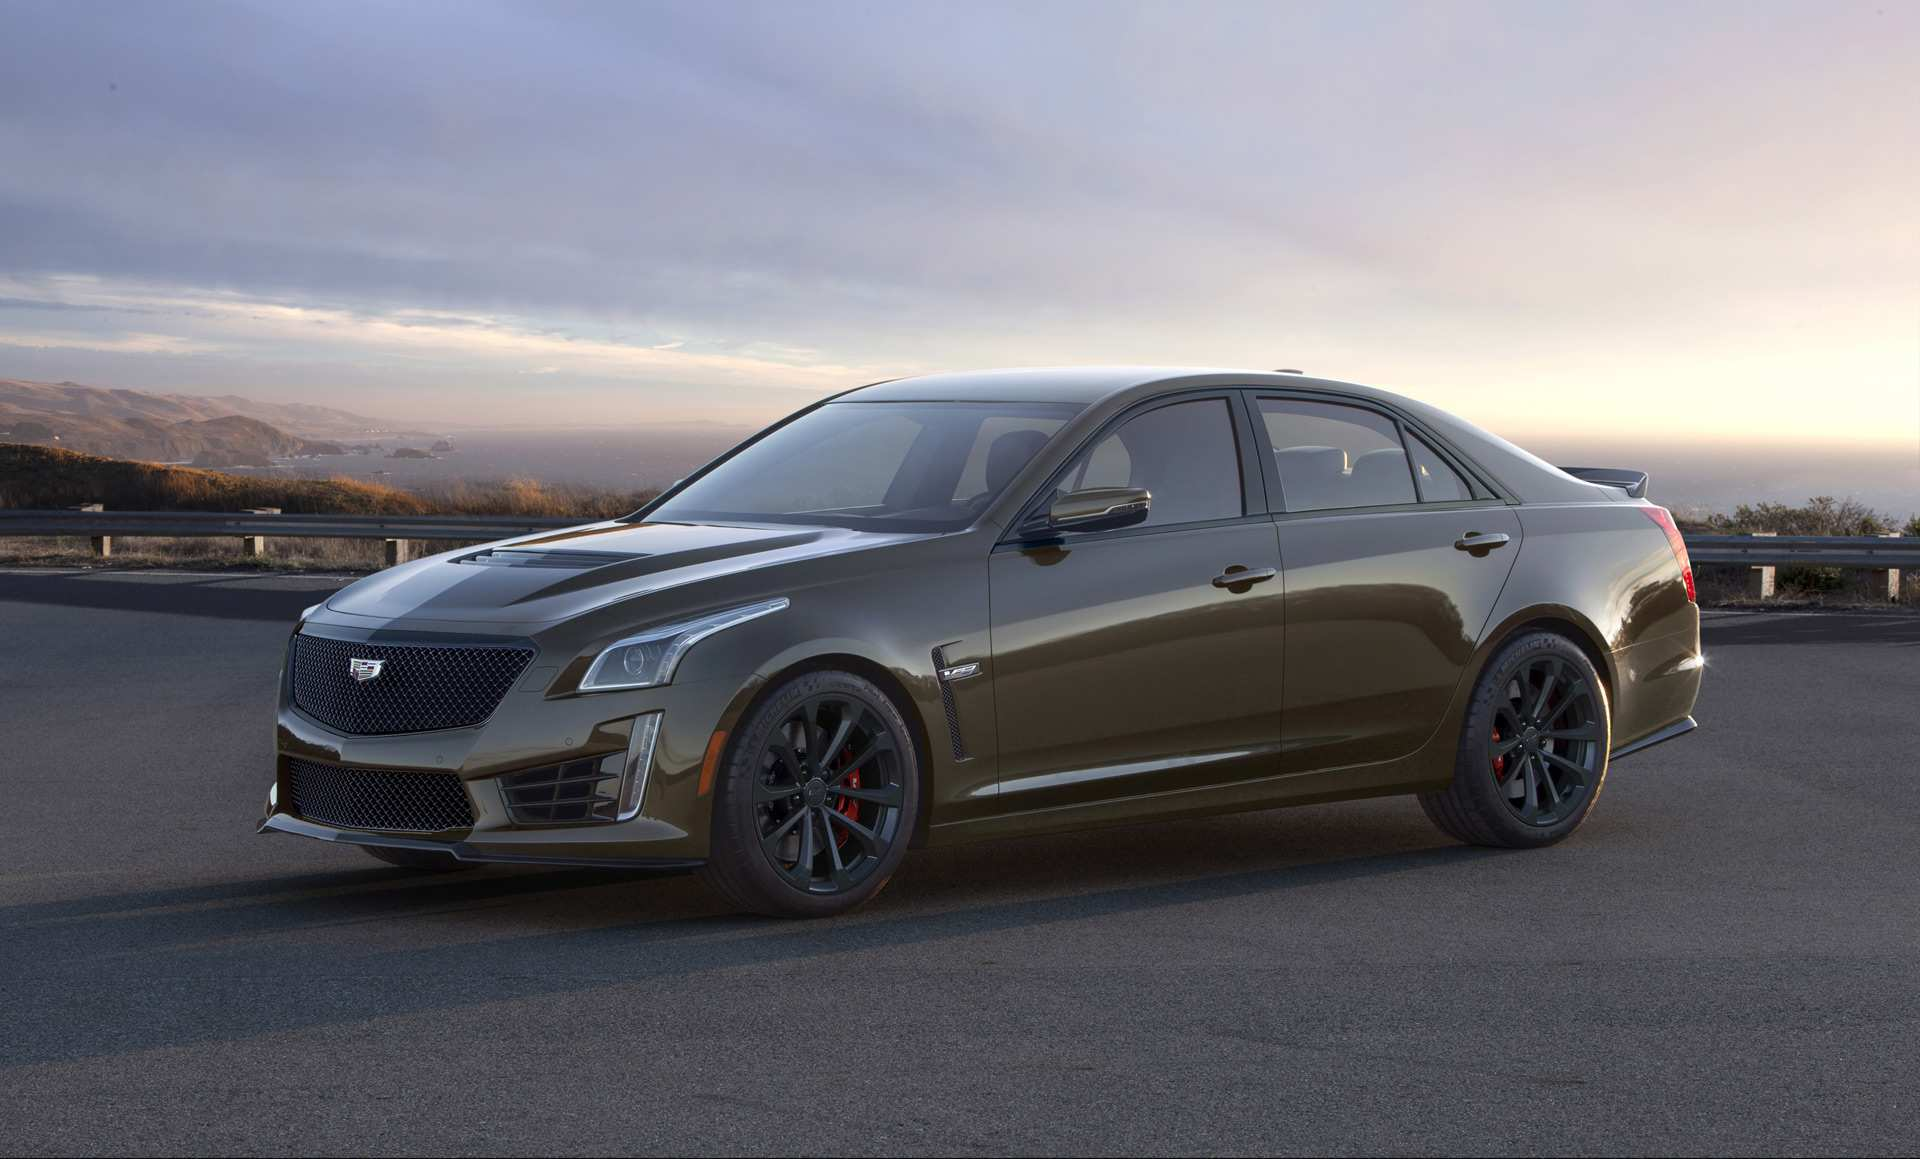 26 Best 2019 Cadillac Cts V Reviews